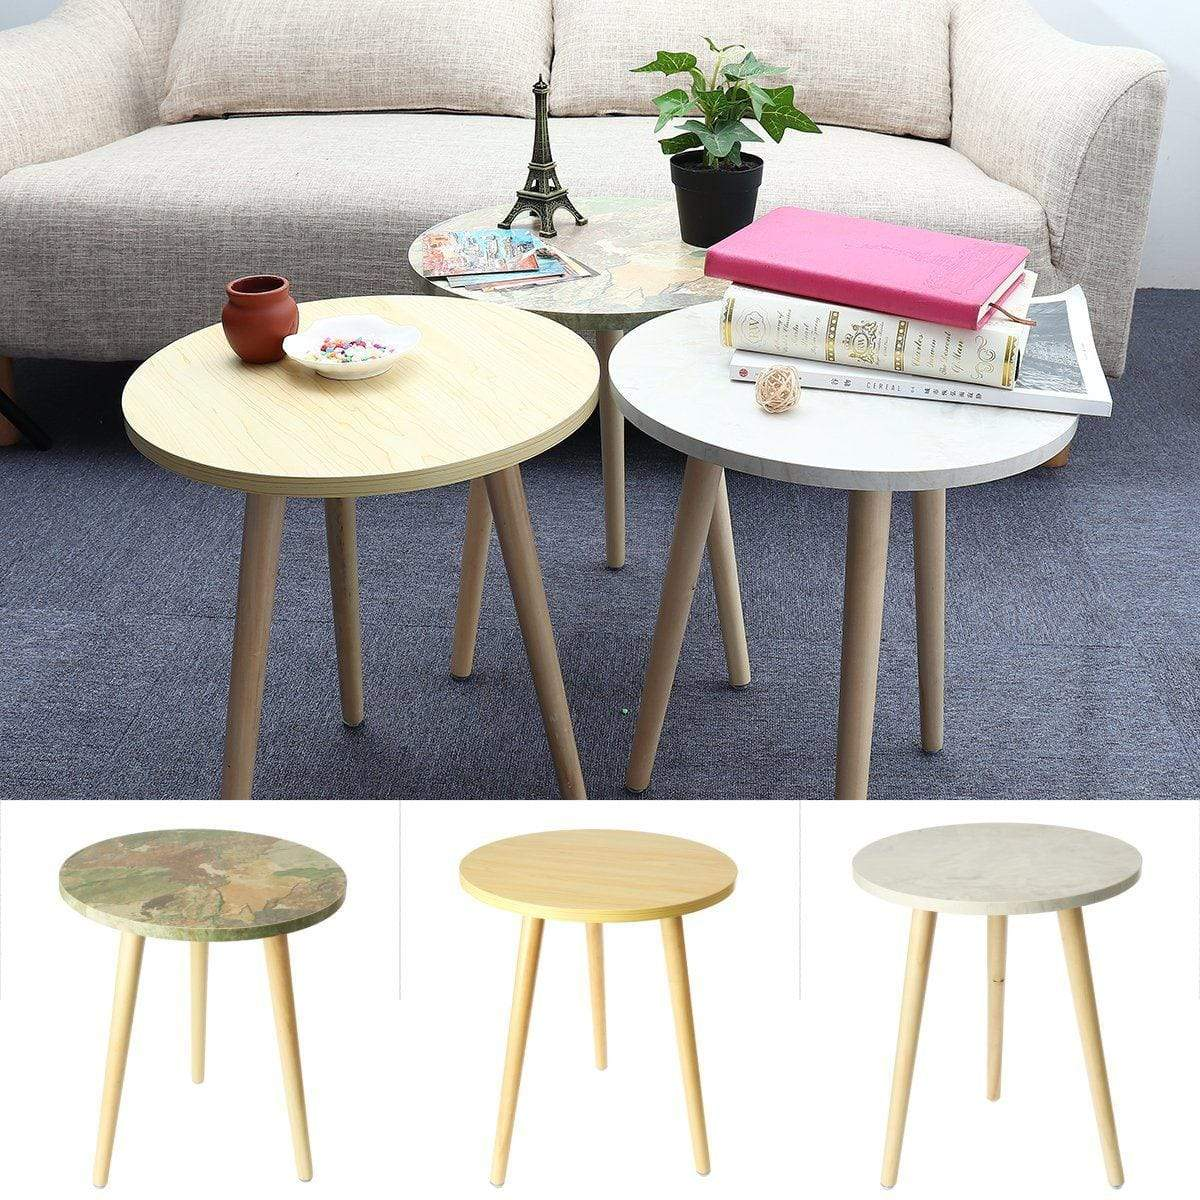 3-style-small-wooden-side-table-round-Zavato-Home